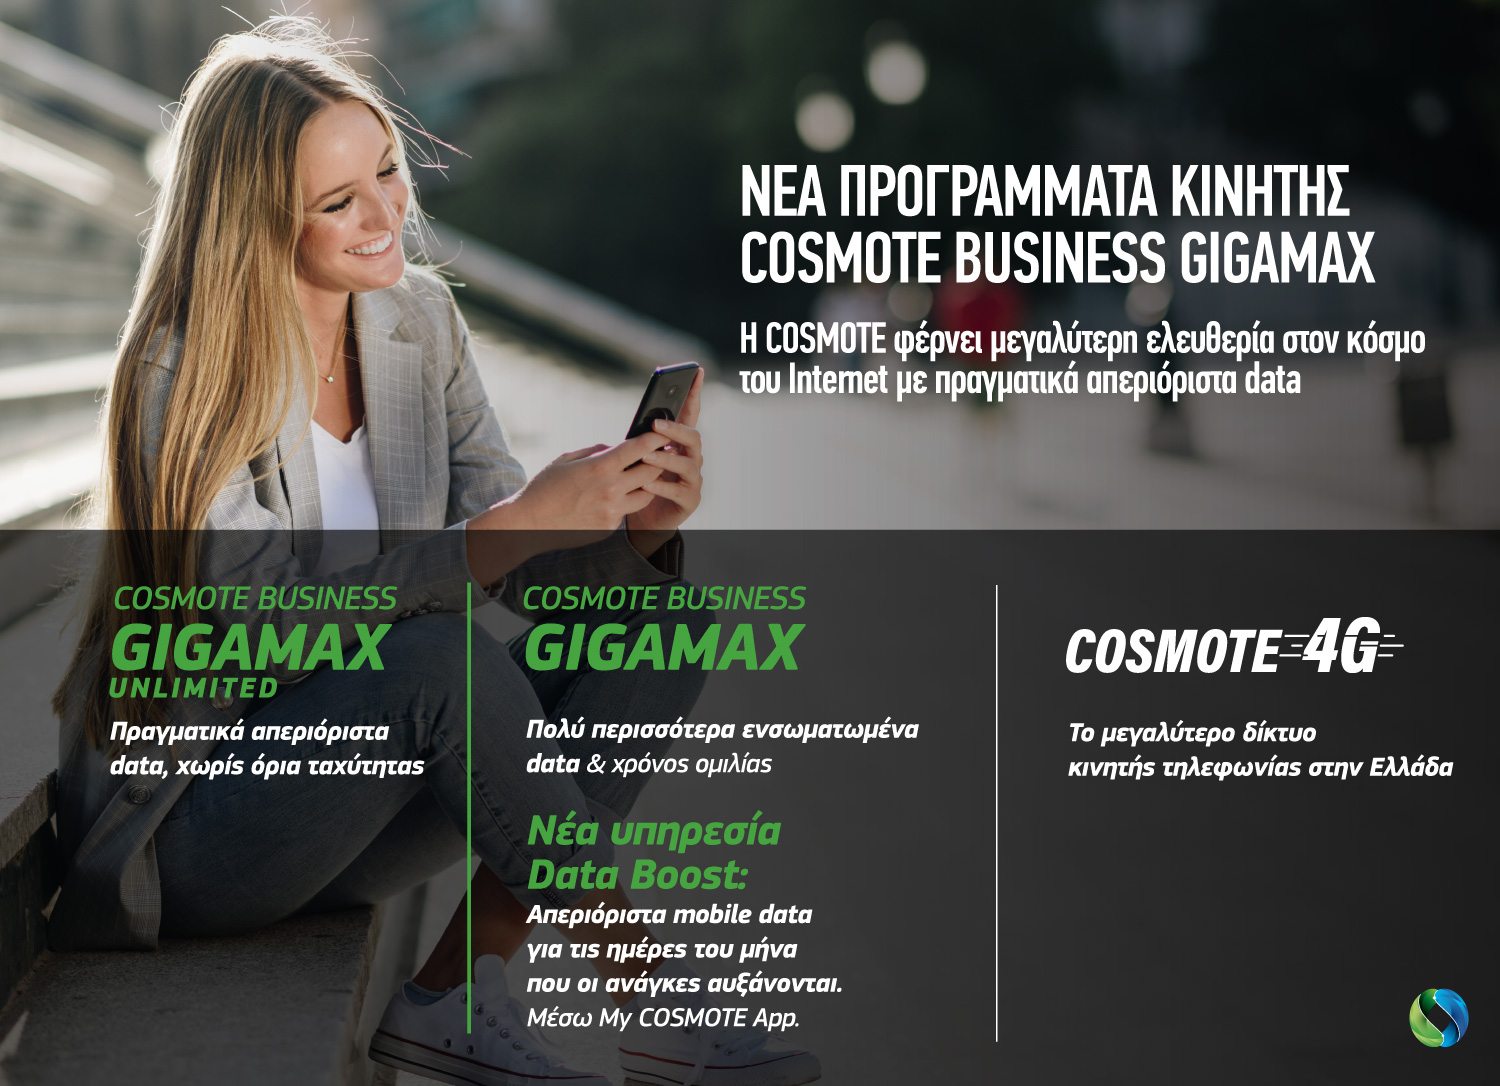 cosmote_gigamax_business_unlimited.jpg